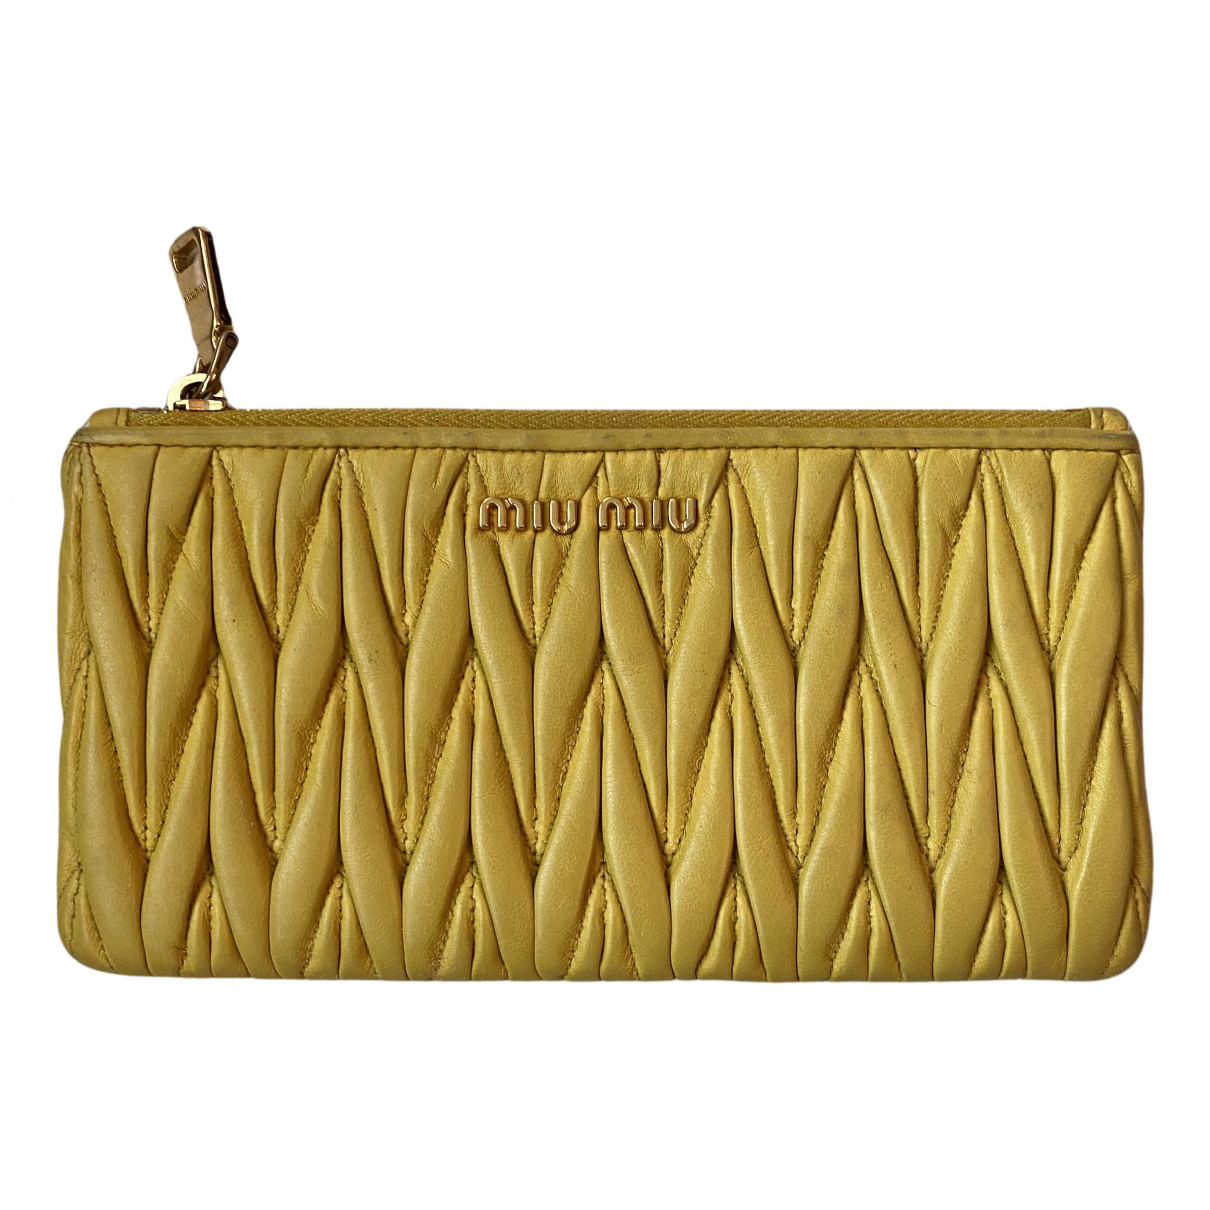 Miu Miu N Yellow Leather Purses, wallet & cases for Women N